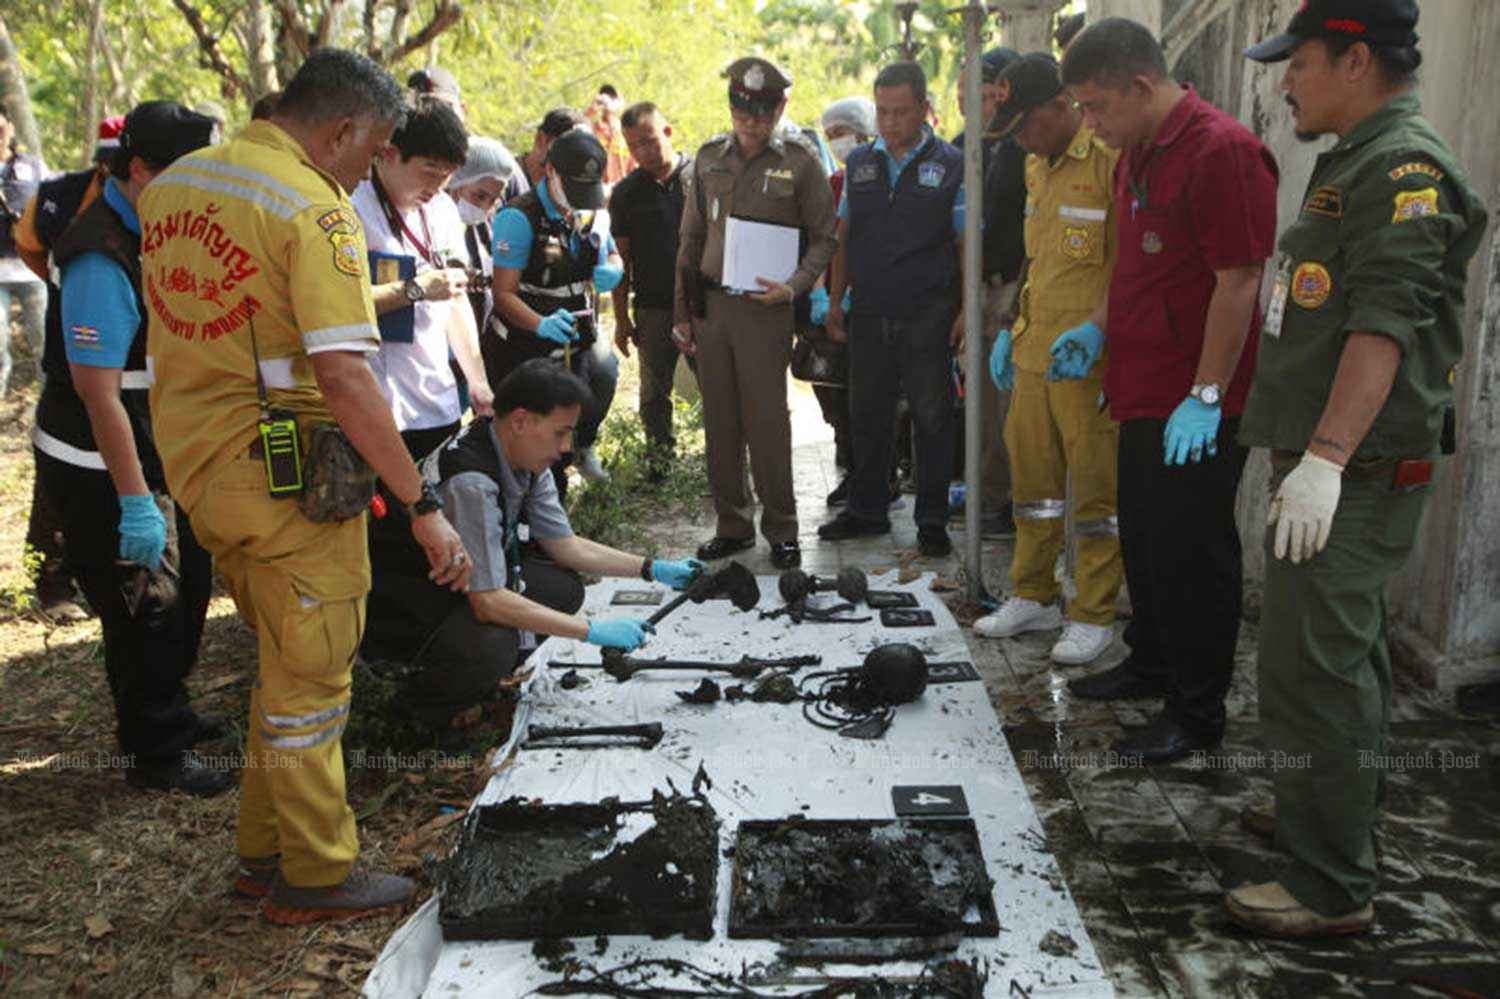 At least 30 human bones and a skull are found in an old metal casket in a pond at the home of a 40-year-old murder suspect in Bangkok's Bang Khae district. The man was earlier charged with killing a 22-year-old woman and concealing her corpse. (Photo by 